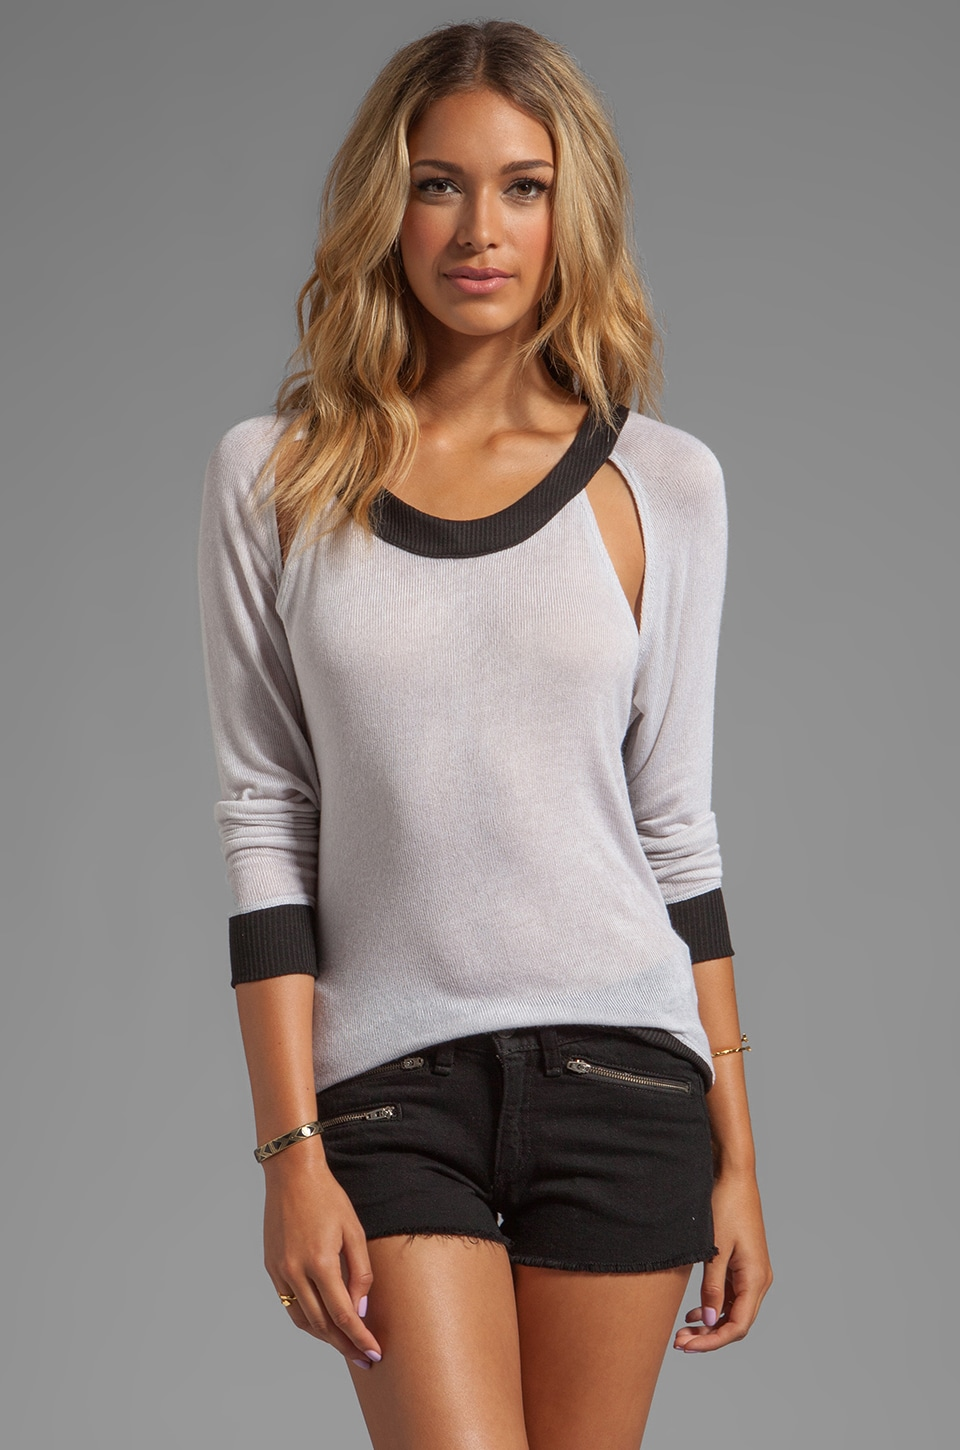 WOODLEIGH Rue Open Shoulder Sweater in Grey/Black